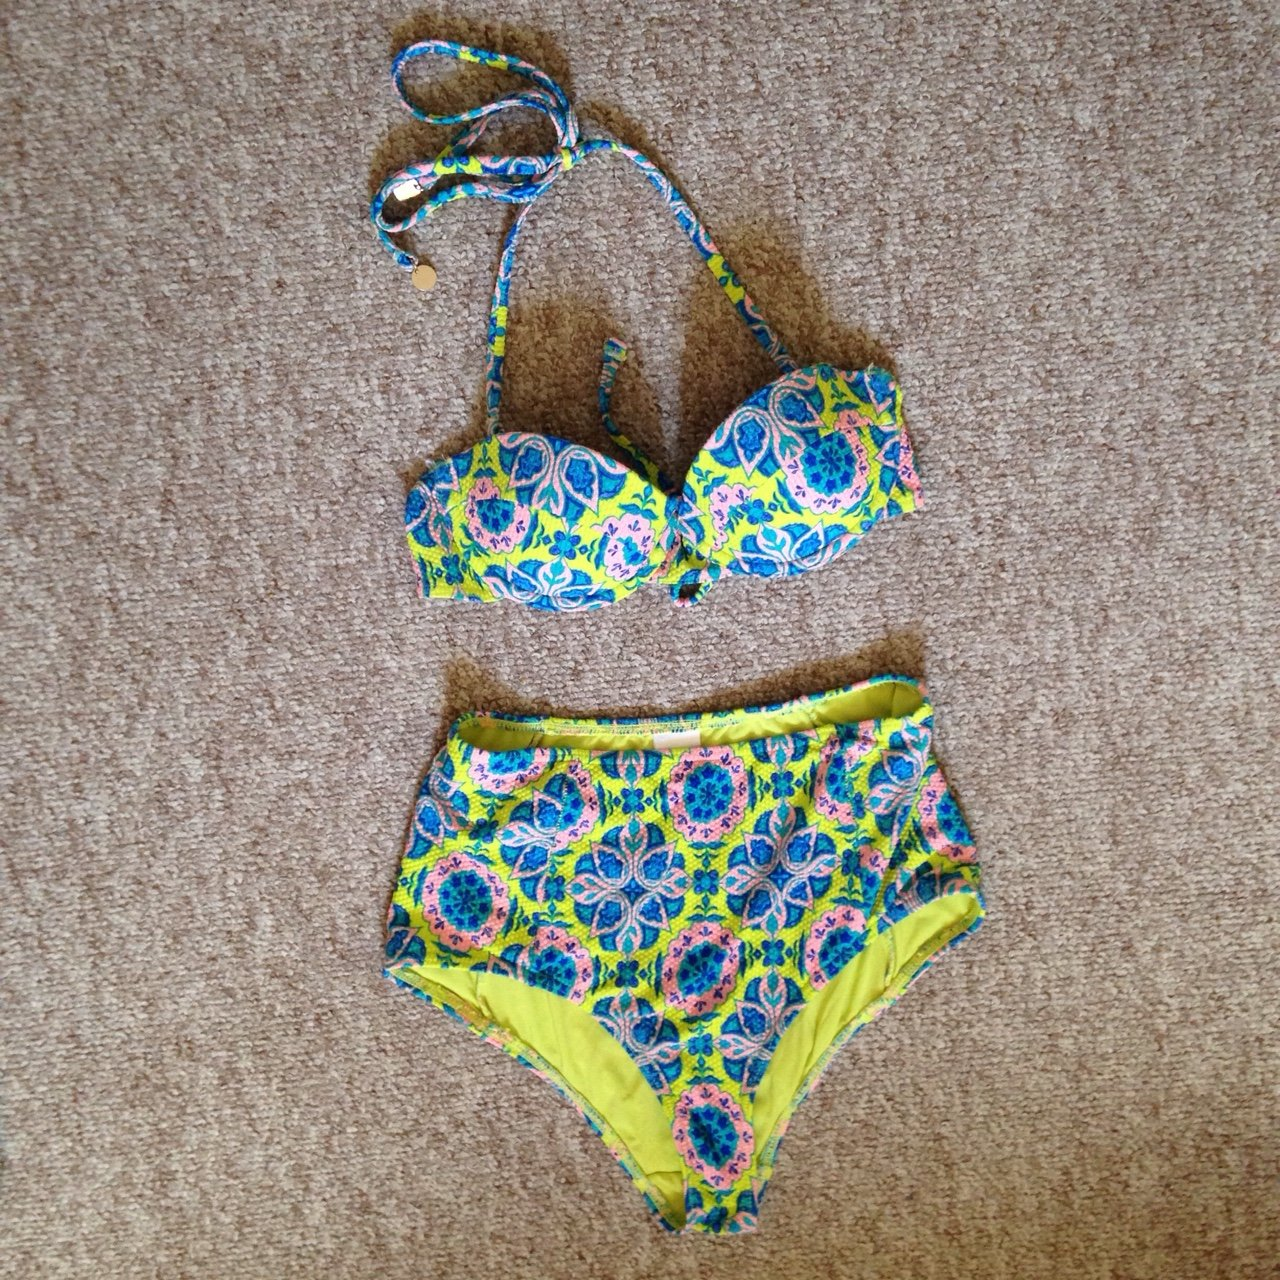 3e0852c0effbd Topshop high waisted bikini set. Only worn once or twice